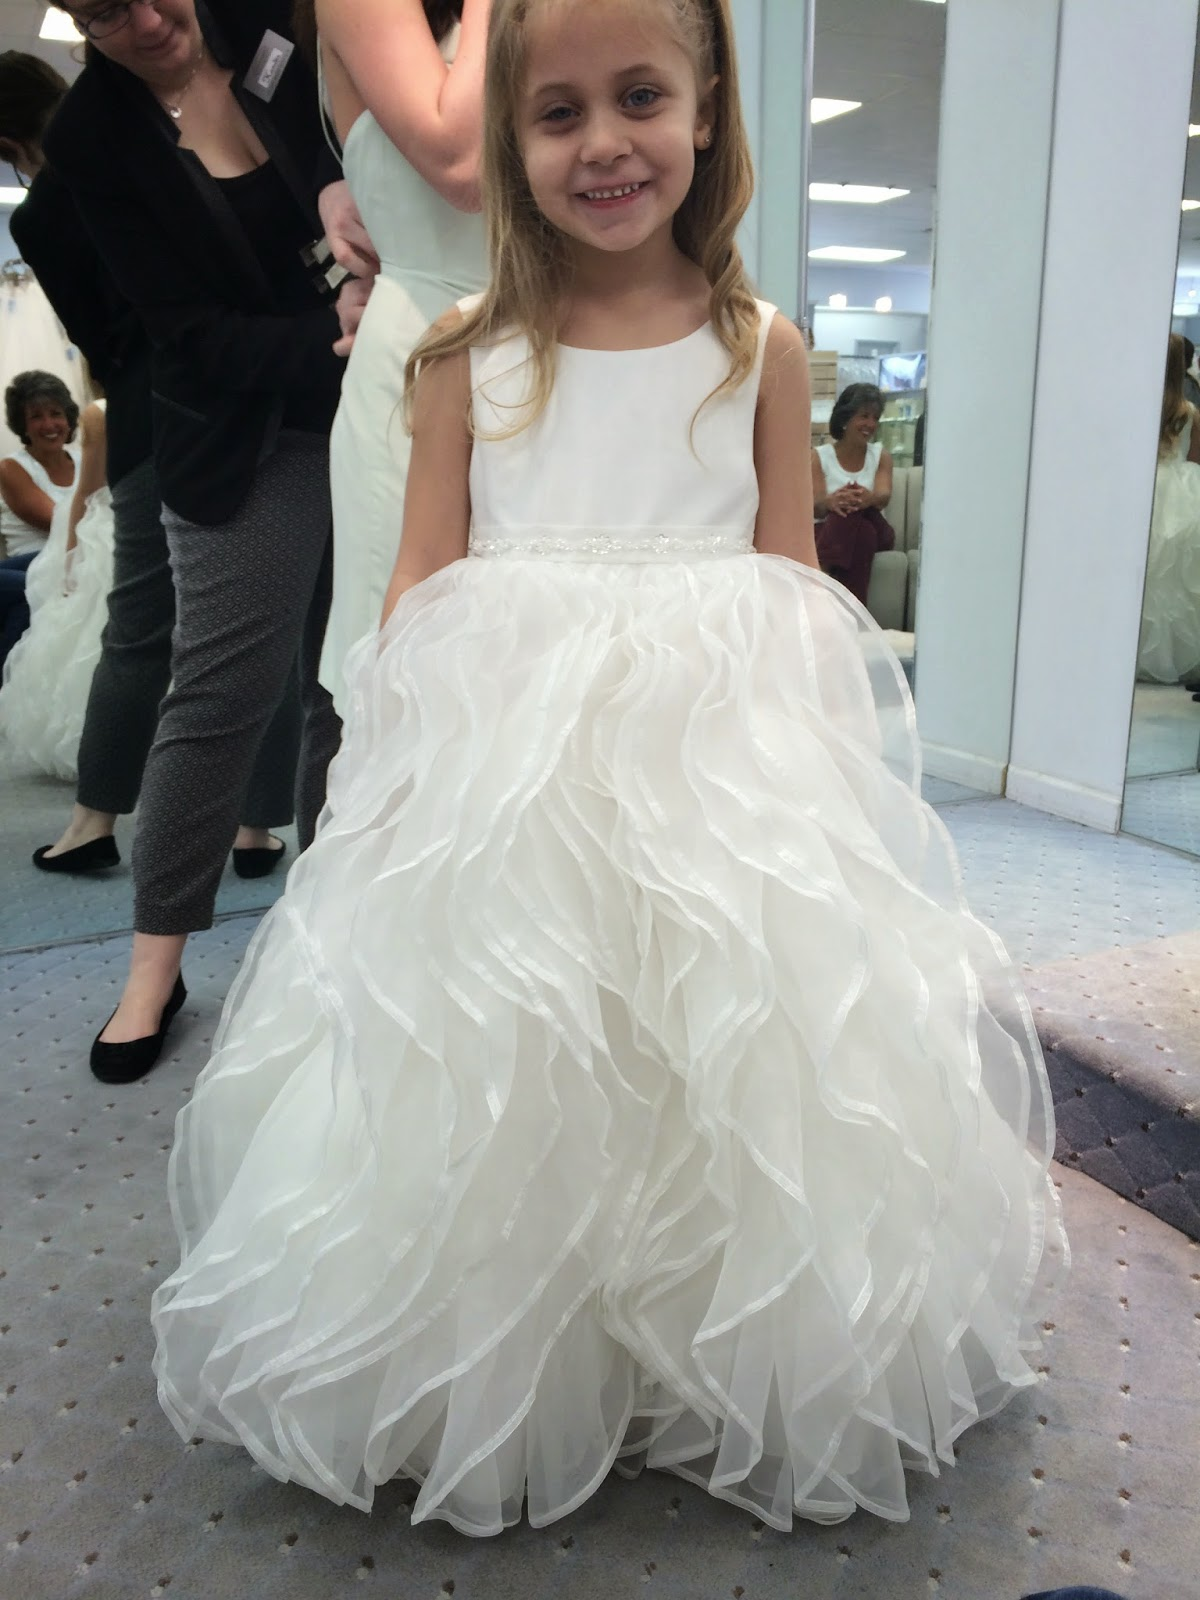 The Doeblerghini Bunch: Dressing Bridesmaids and Flower Girls